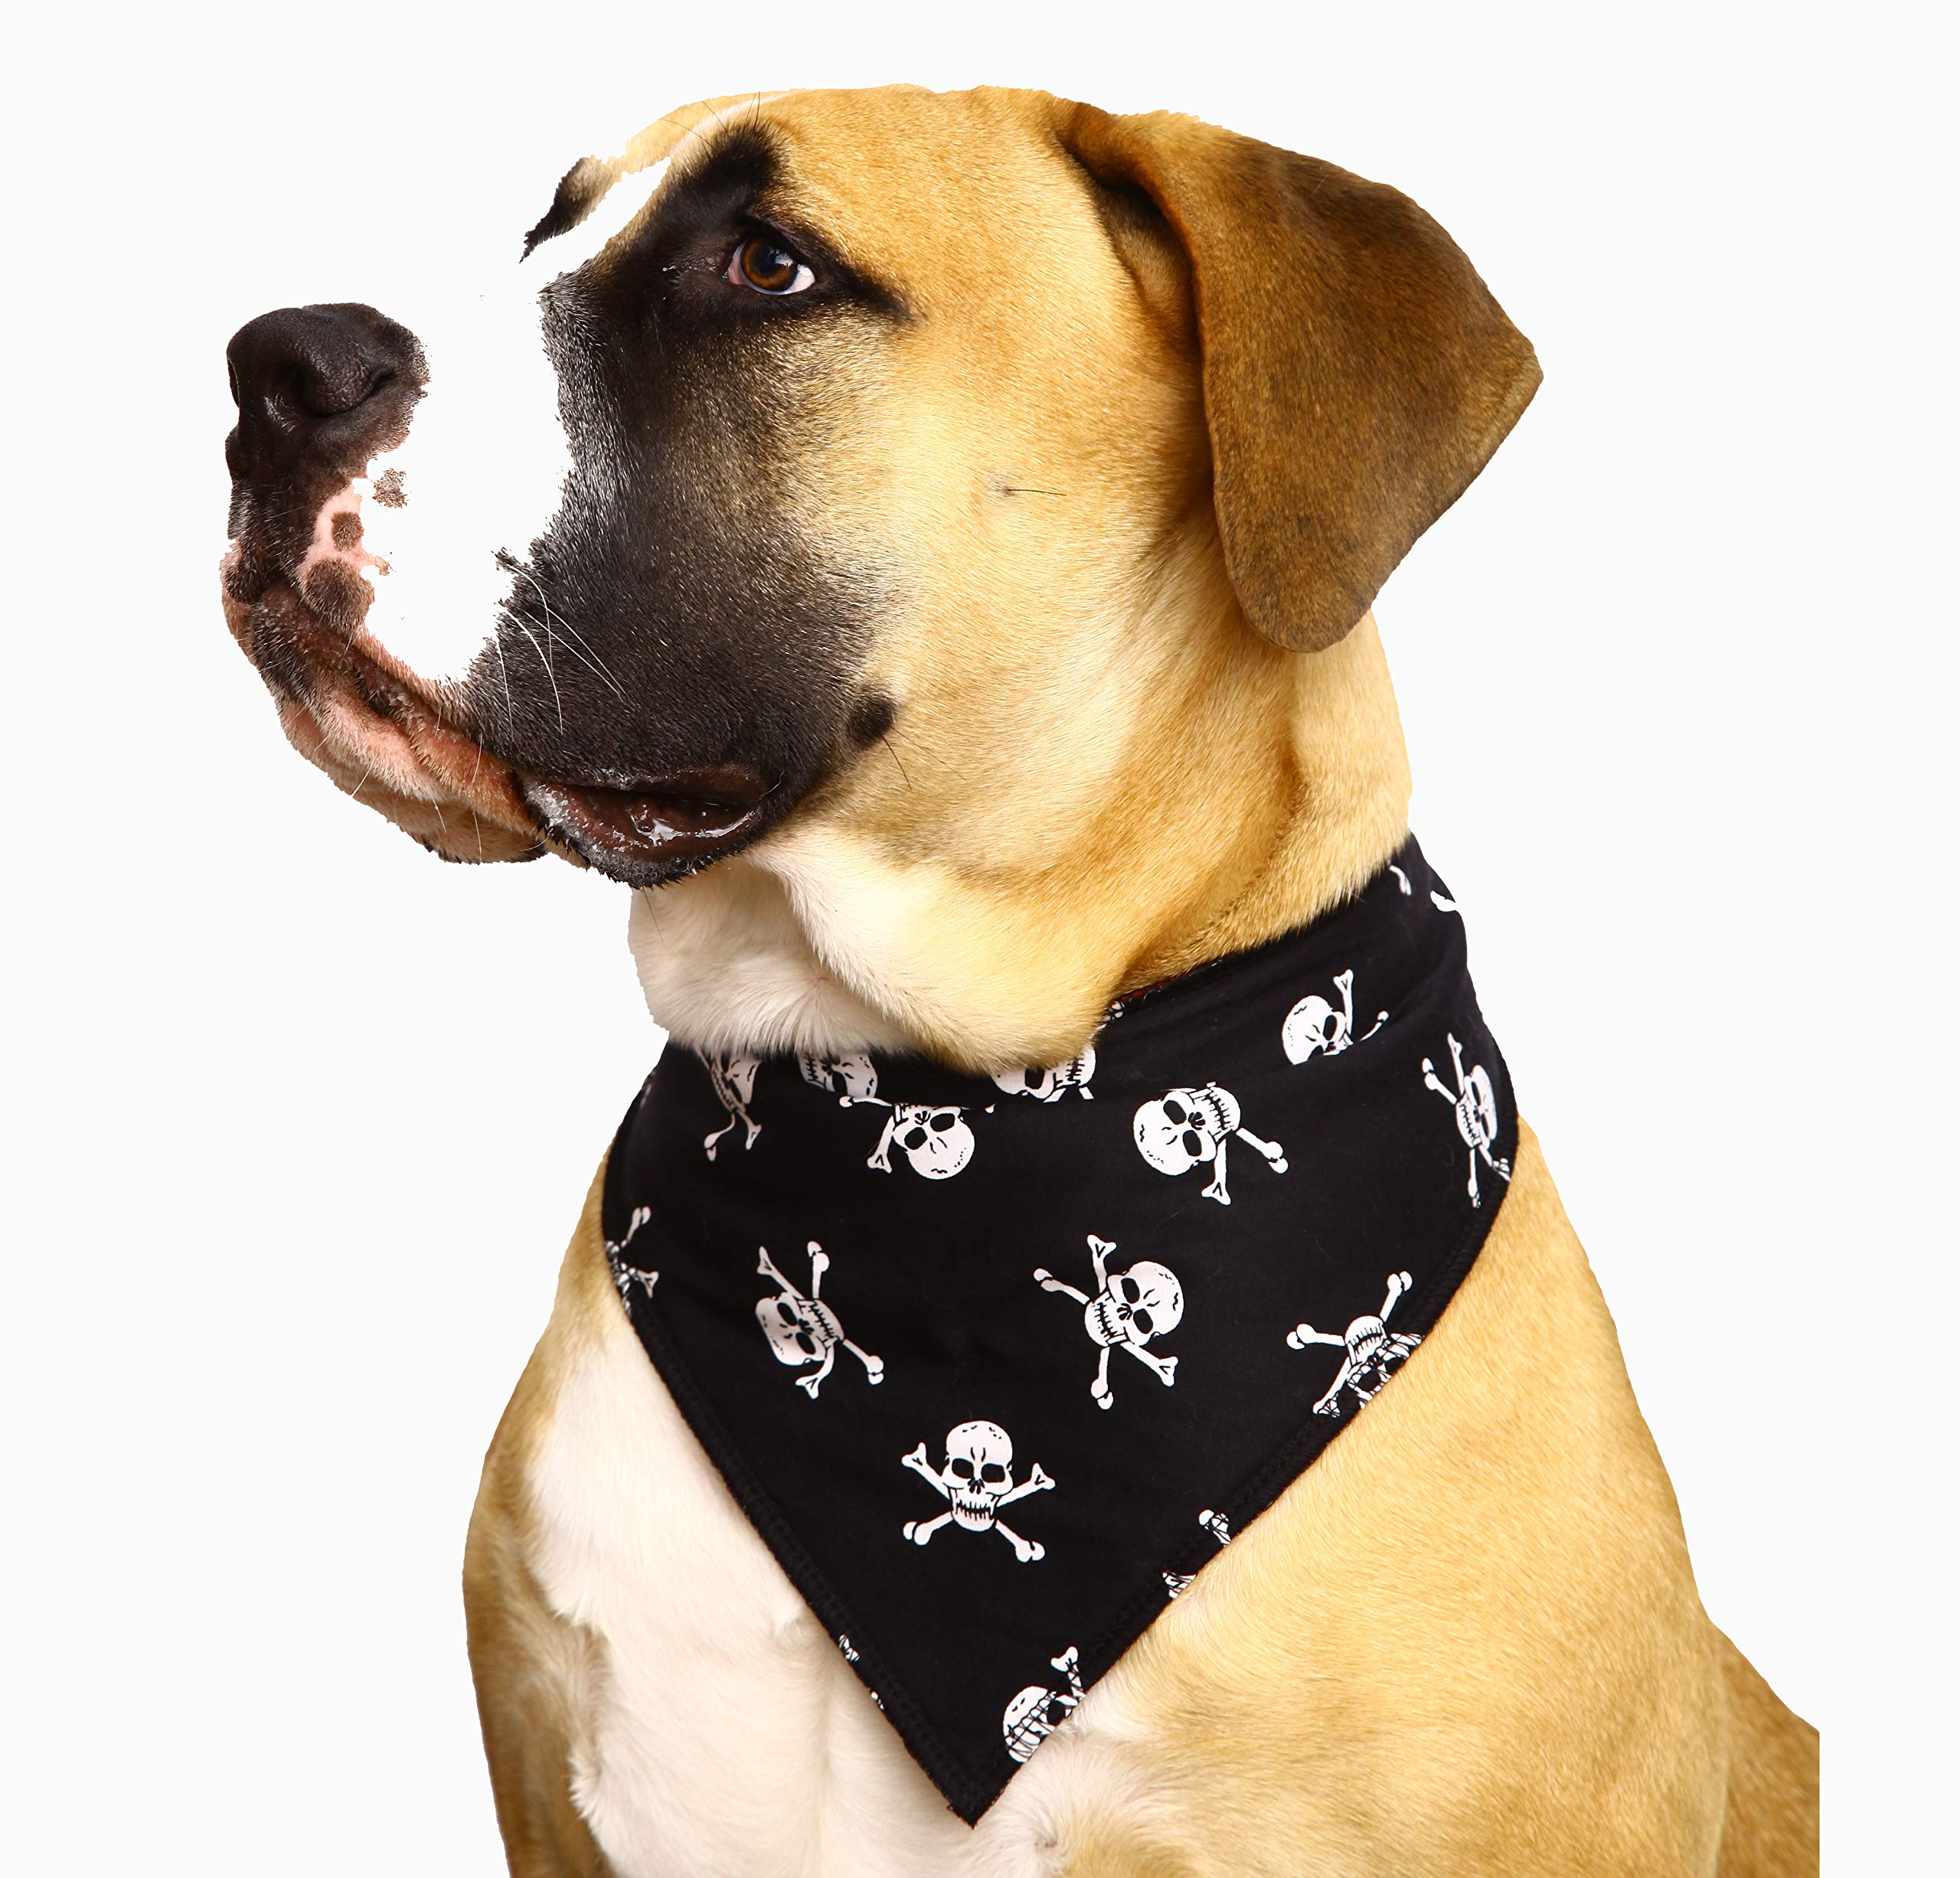 Spoilt Rotten Pet (S4) White Skulls Jolly Roger Bandana. Extra Large Size Generally Fits Rottweilers and St Bernard Sized Dogs. Neck Size 23″ to 28″ Gorgeous Range of Patterns & Colours.